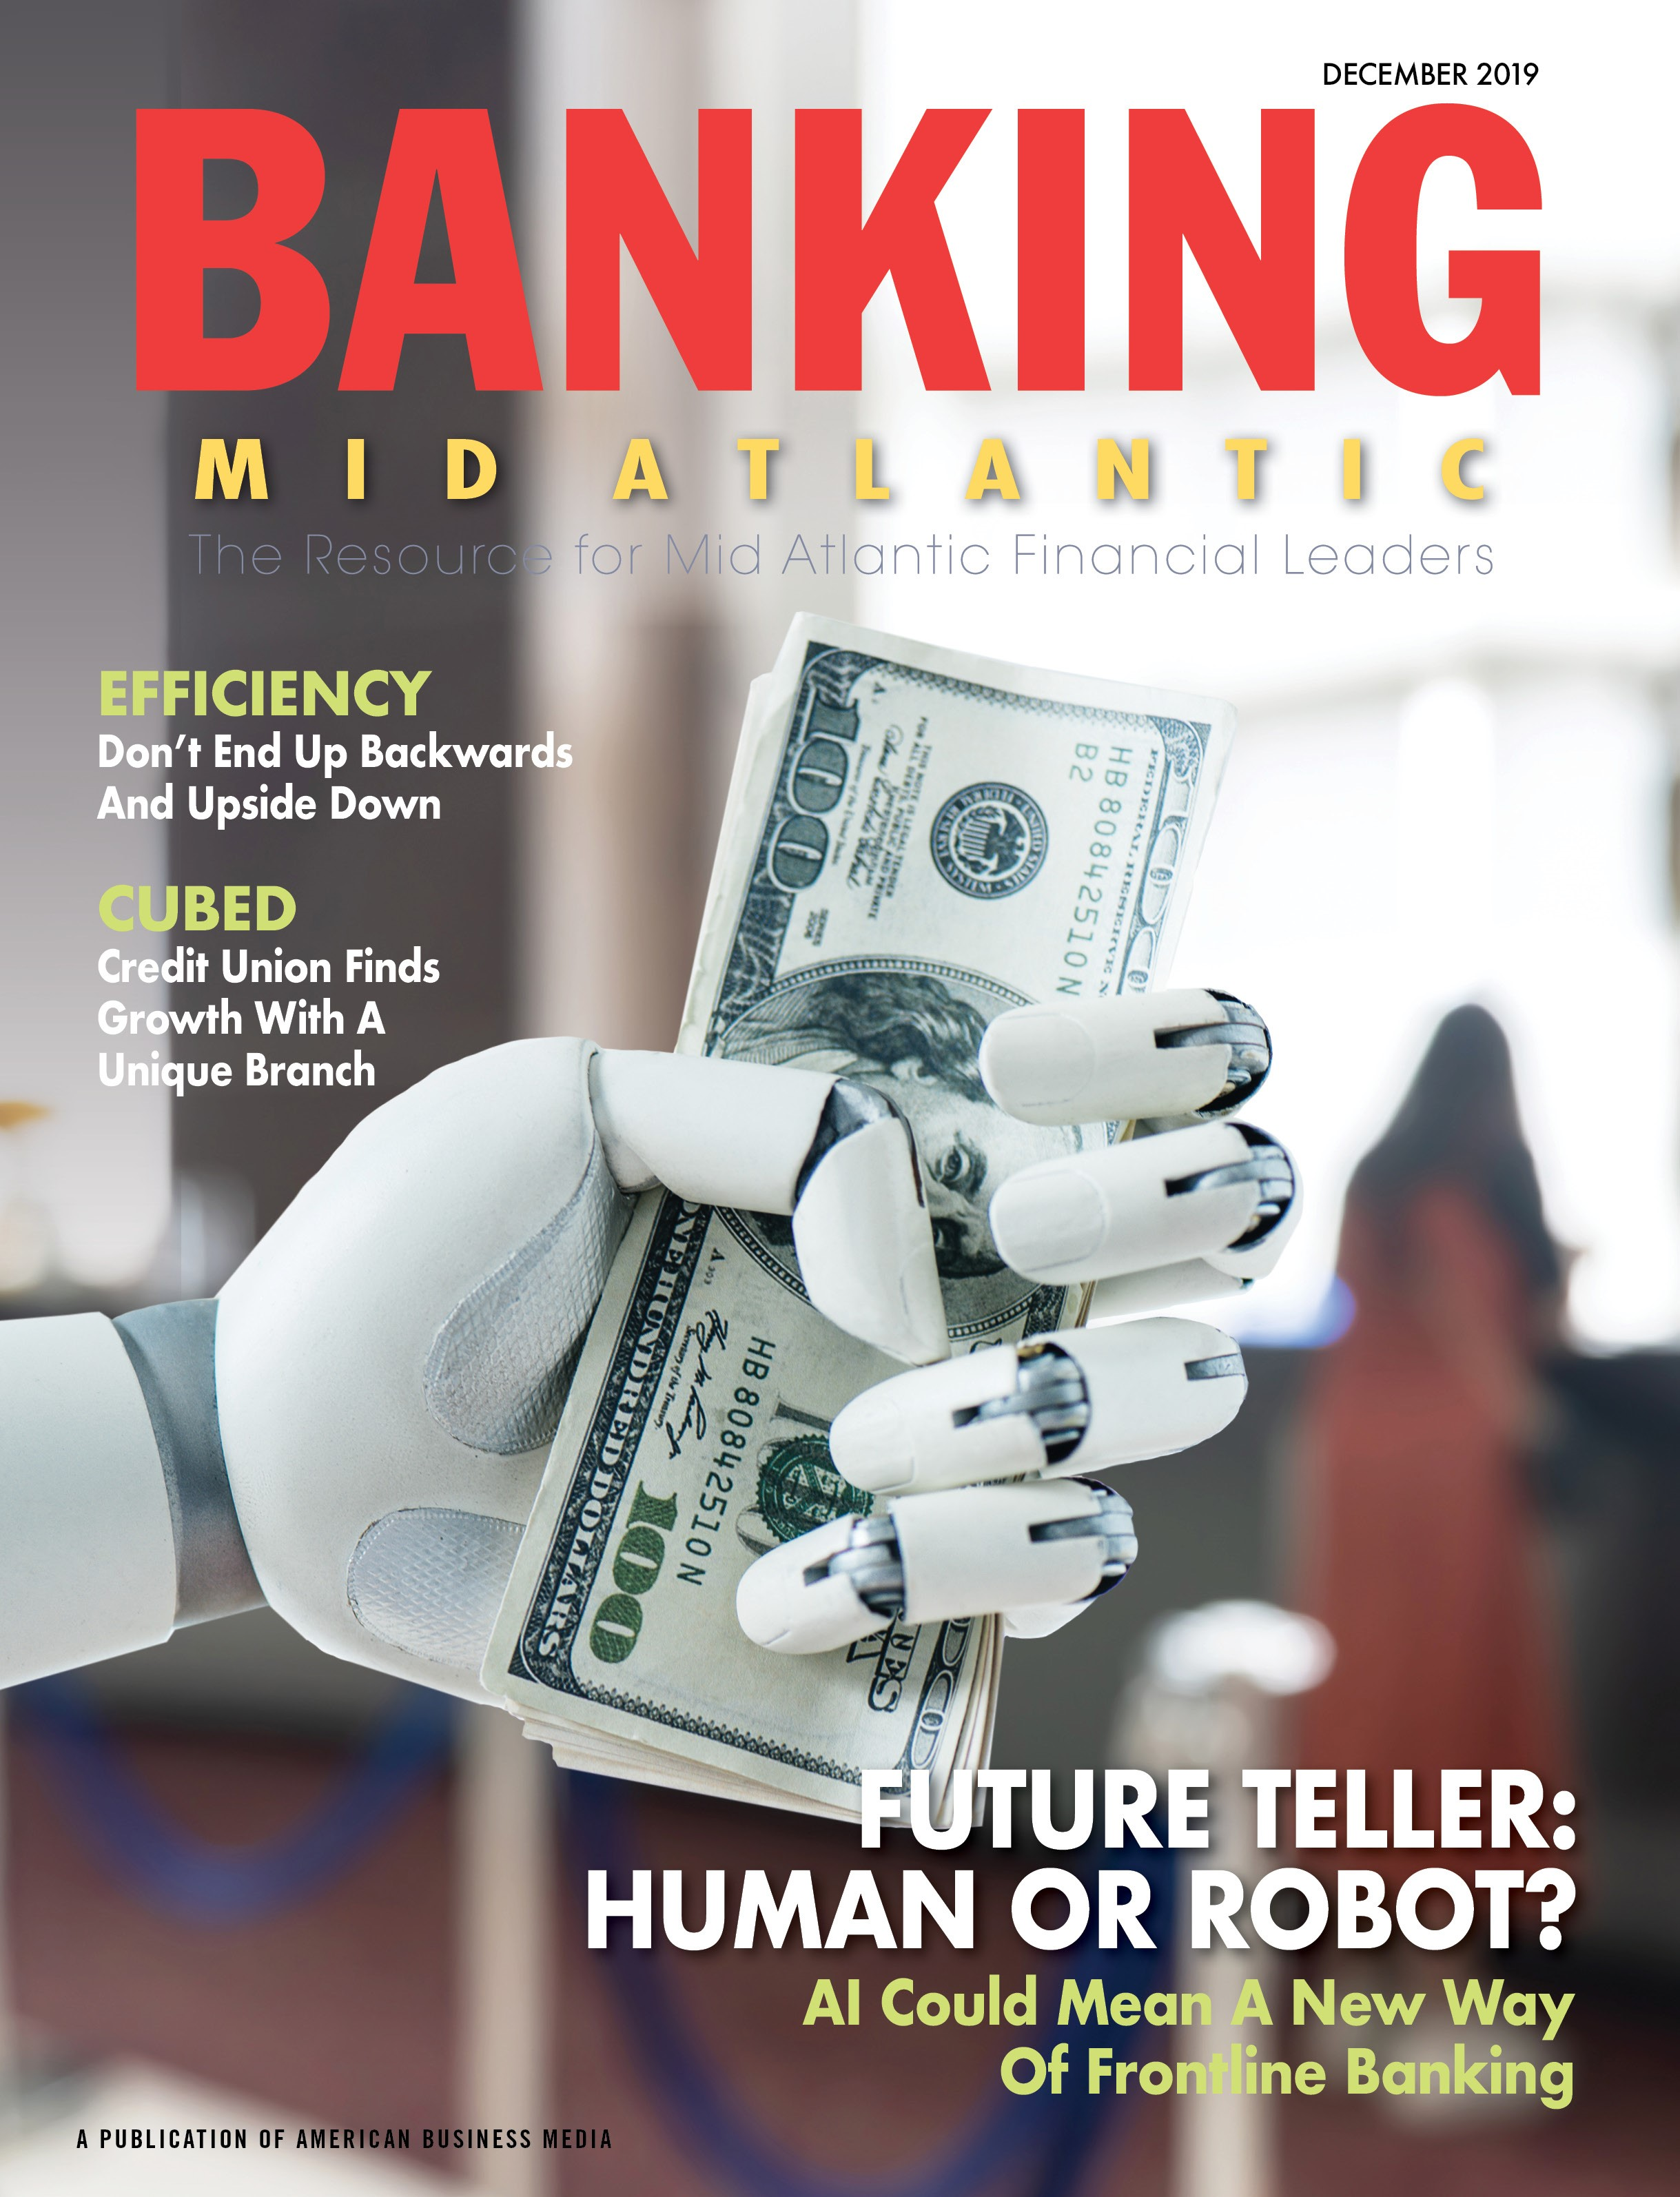 Banking Mid Atlantic Dec 19 cover